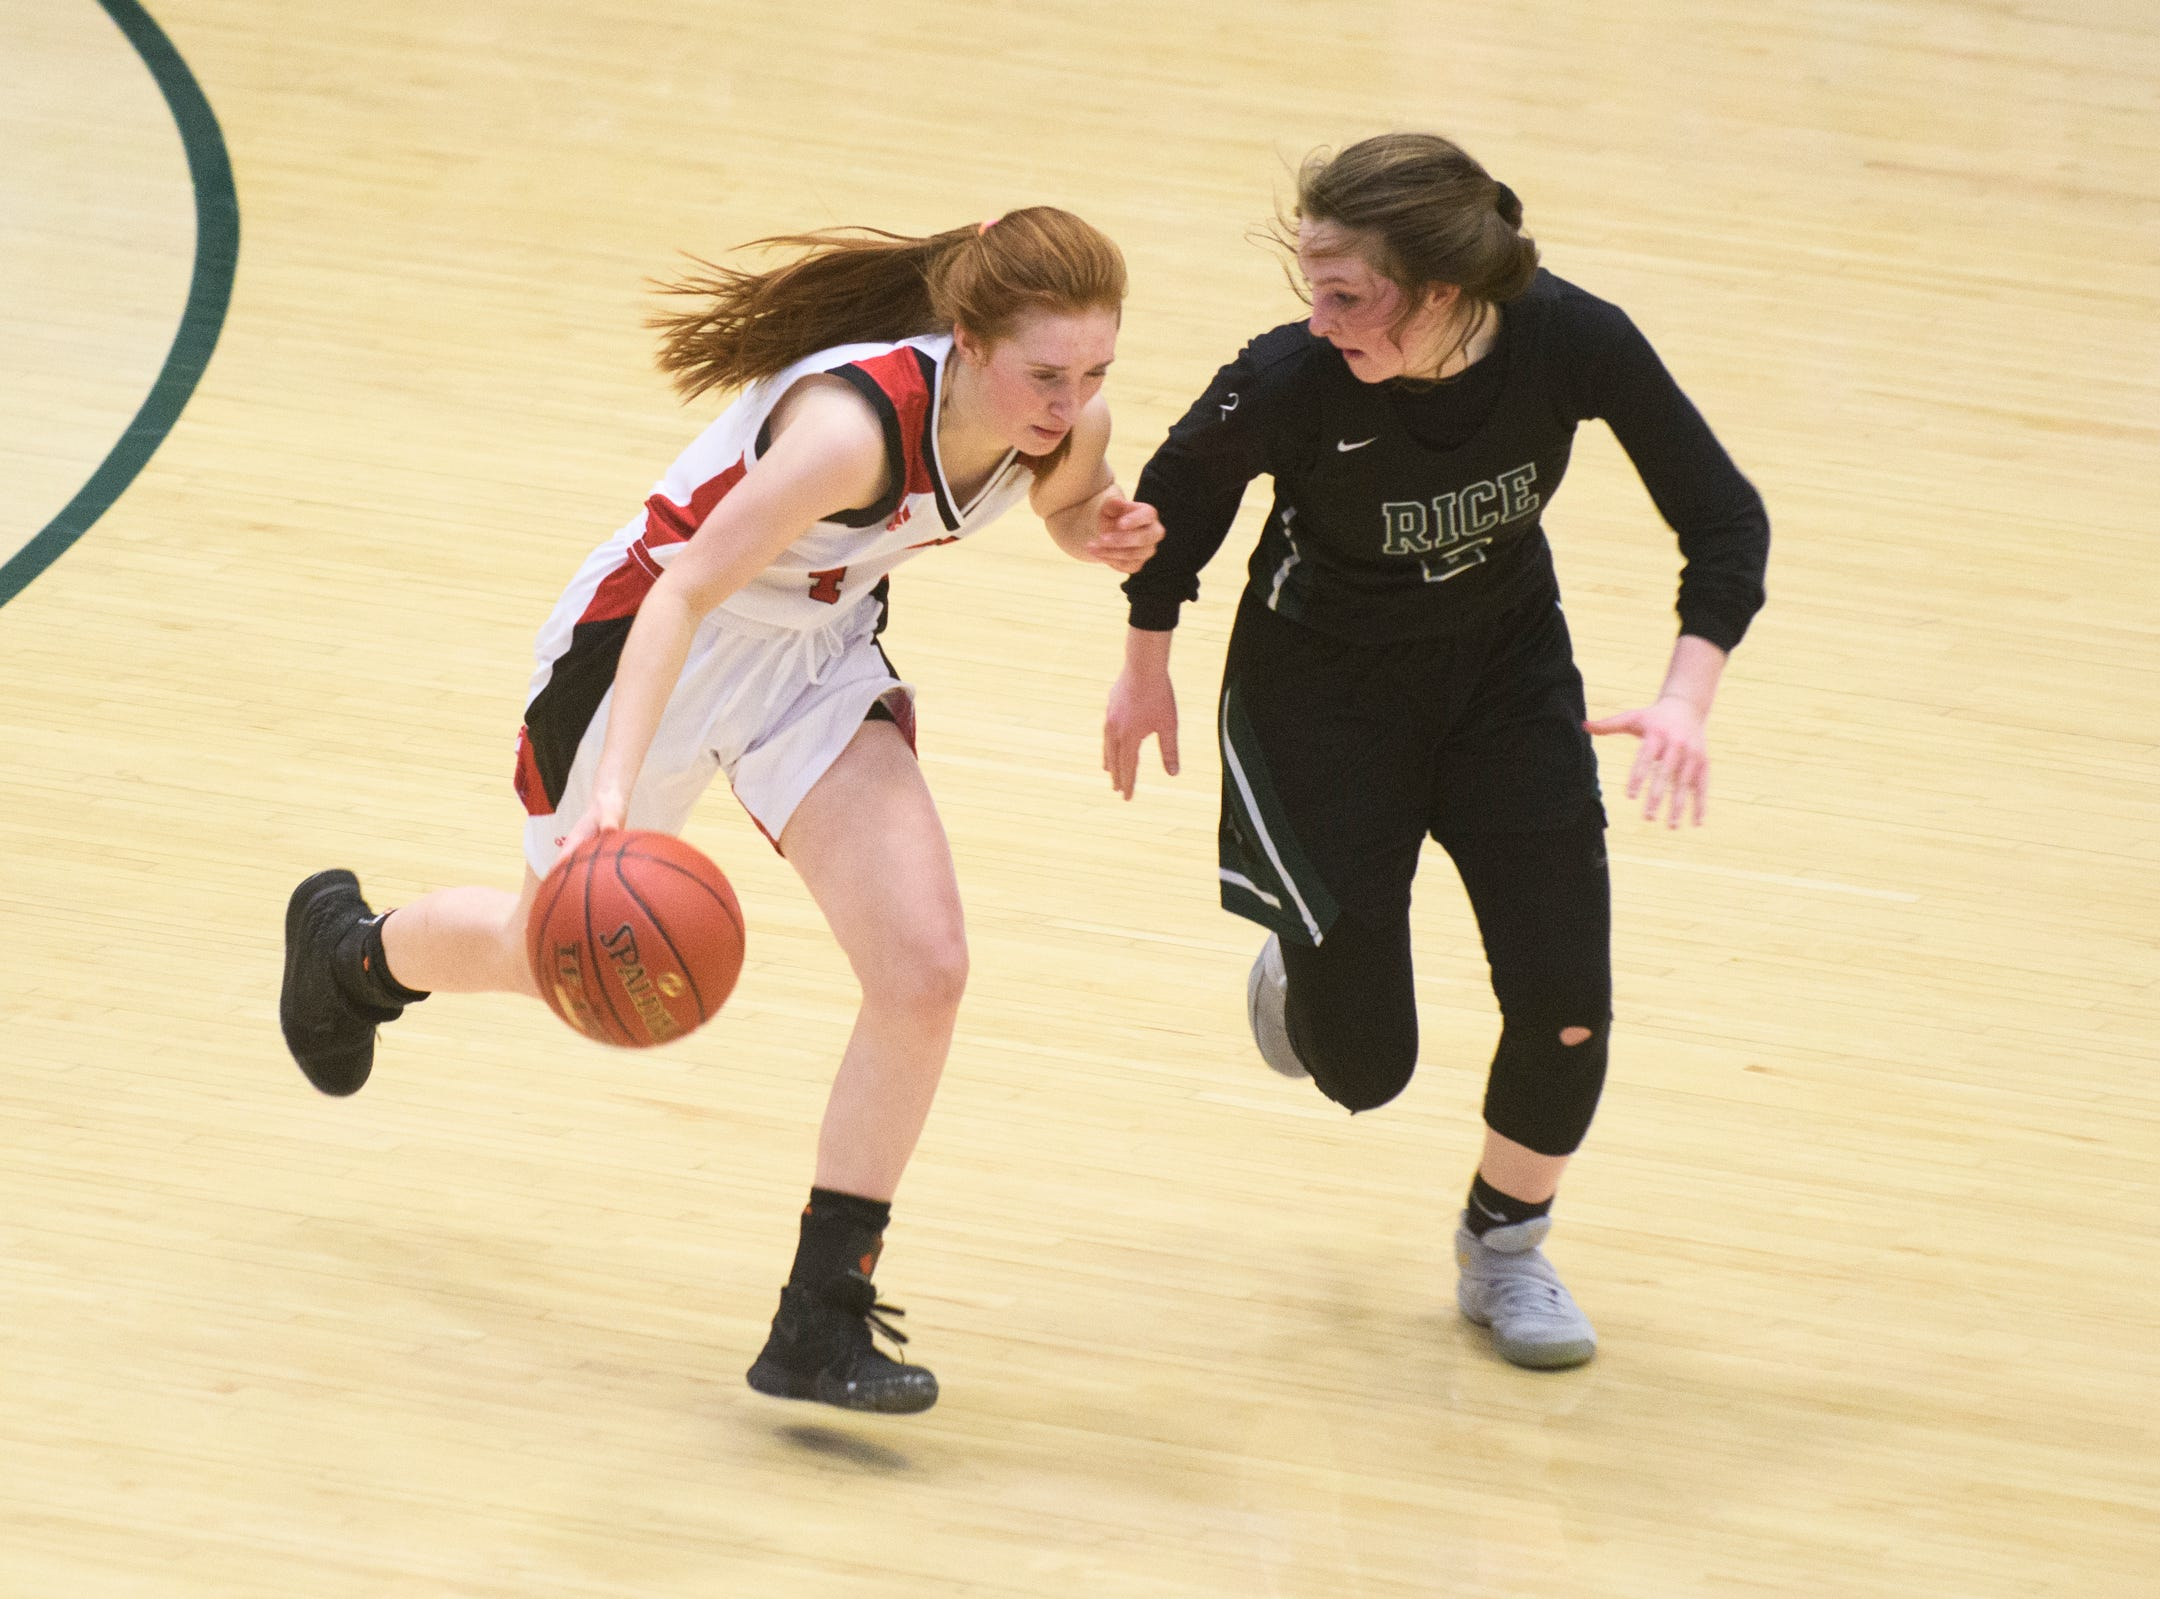 CVU's Catherine Gilwee (4) dribbles the ball down the court past Rice's Fiona Connolly (2) during the girls semifinal basketball game between the Rice Green Knights and the Champlain Valley Union Redhawks at Patrick Gym on Wednesday nigh March 6, 2019 in Burlington, Vermont.